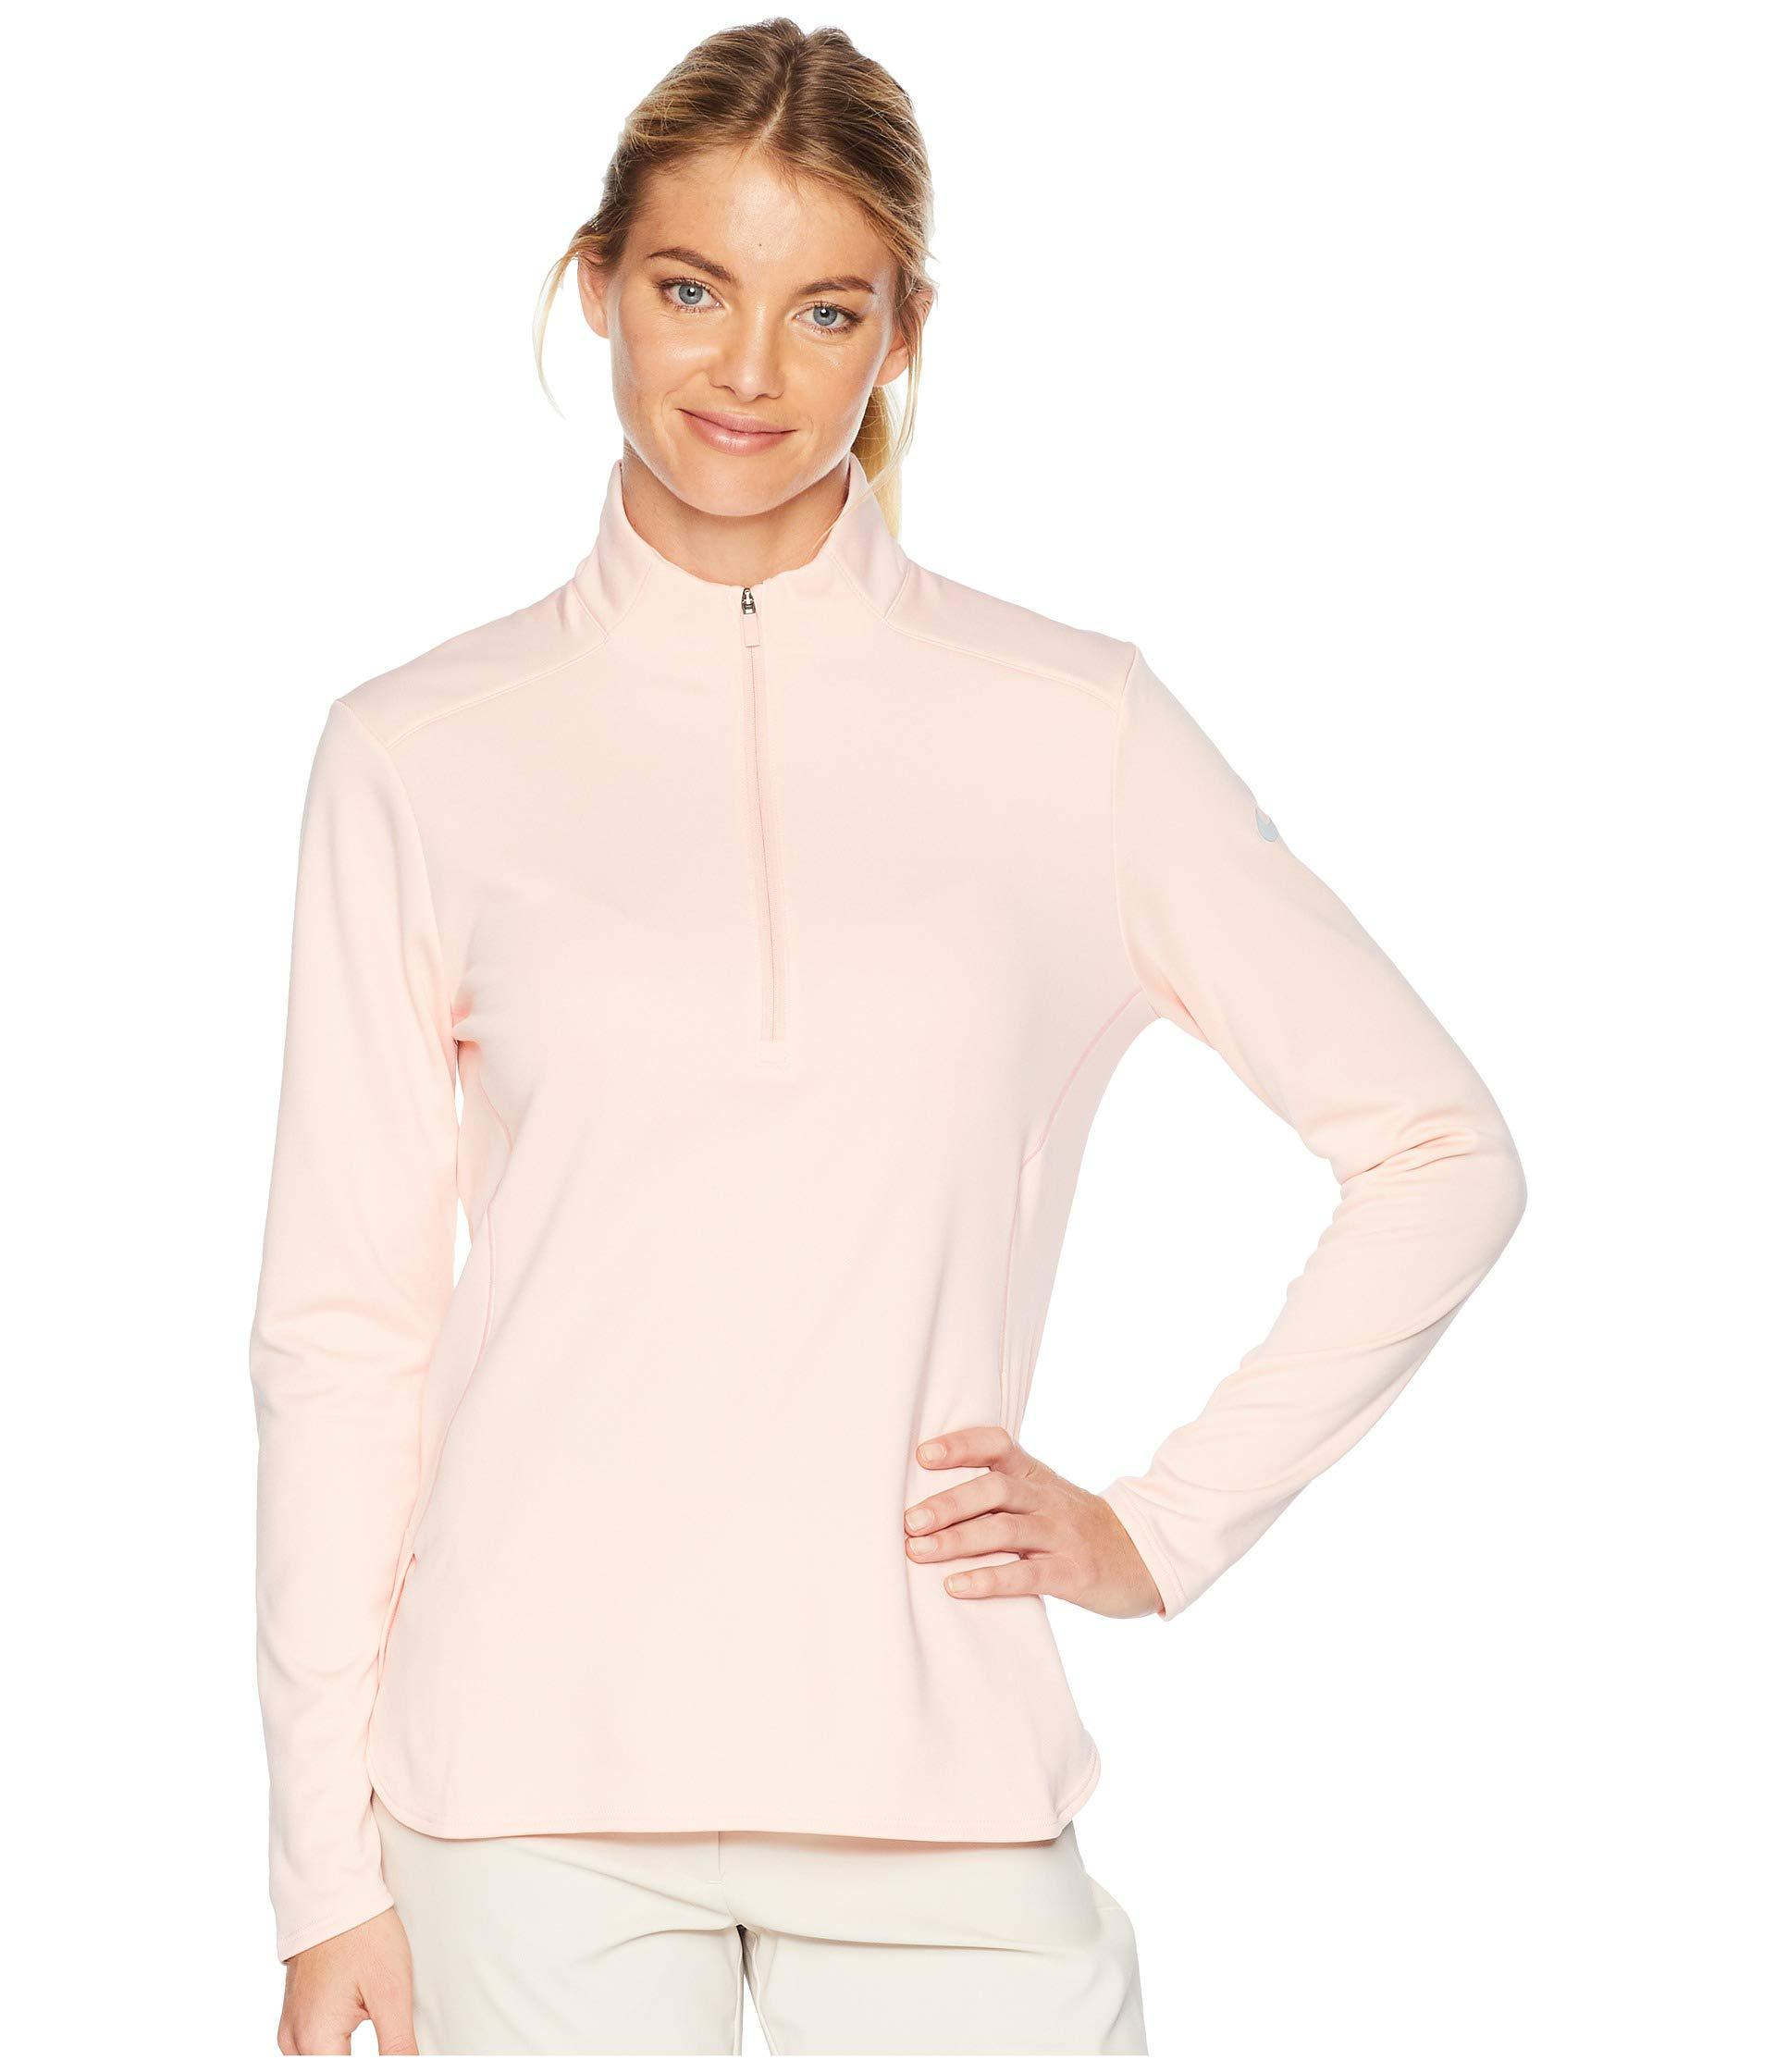 a5e27087b6af9 Lyst - Nike Dry Long Sleeve Top (black/black) Women's Clothing in Pink